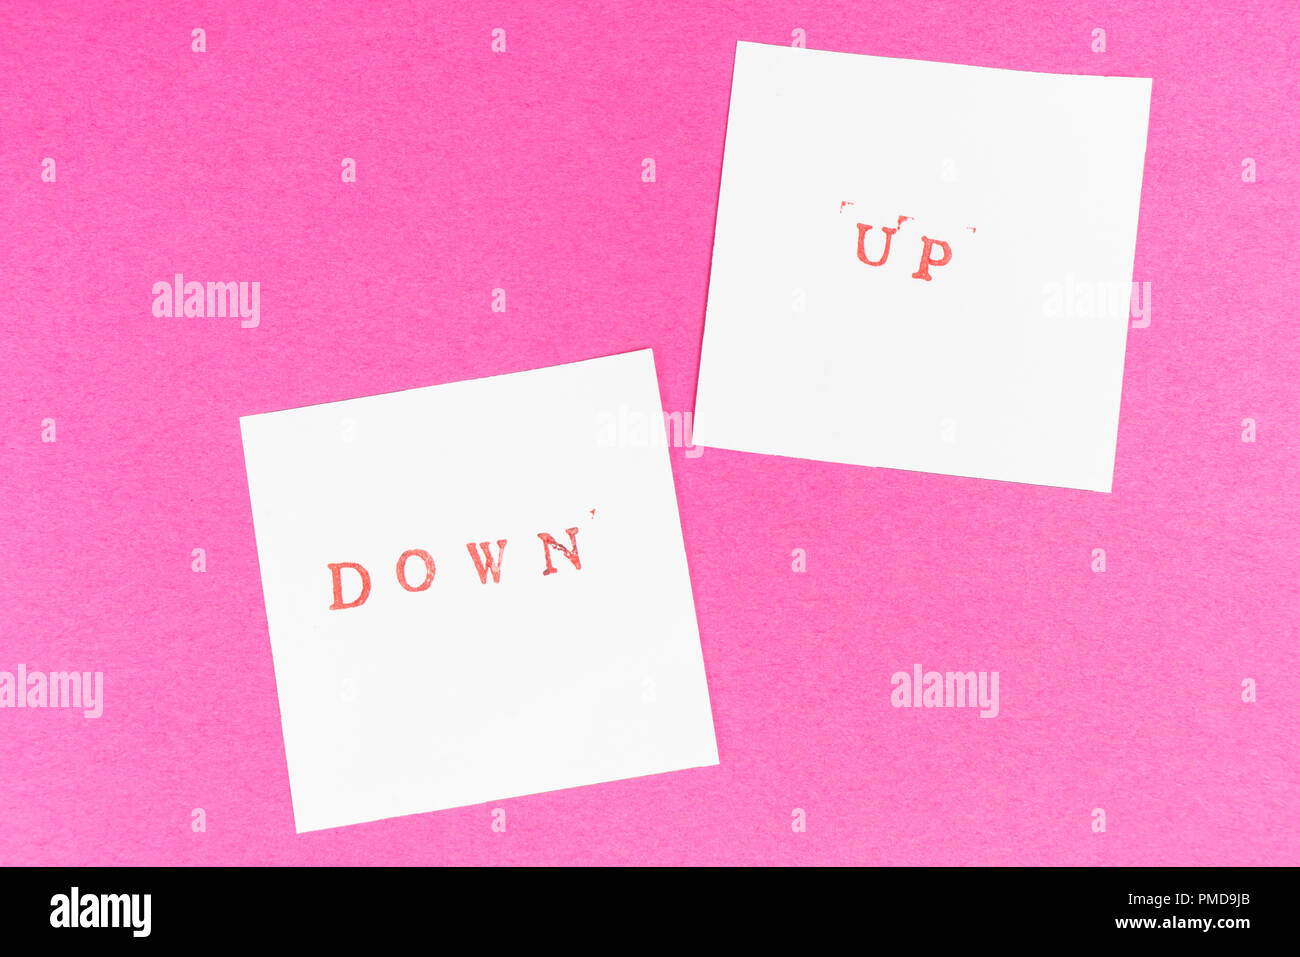 the contrast between the up and down words printed on two sheets of paper - Stock Image